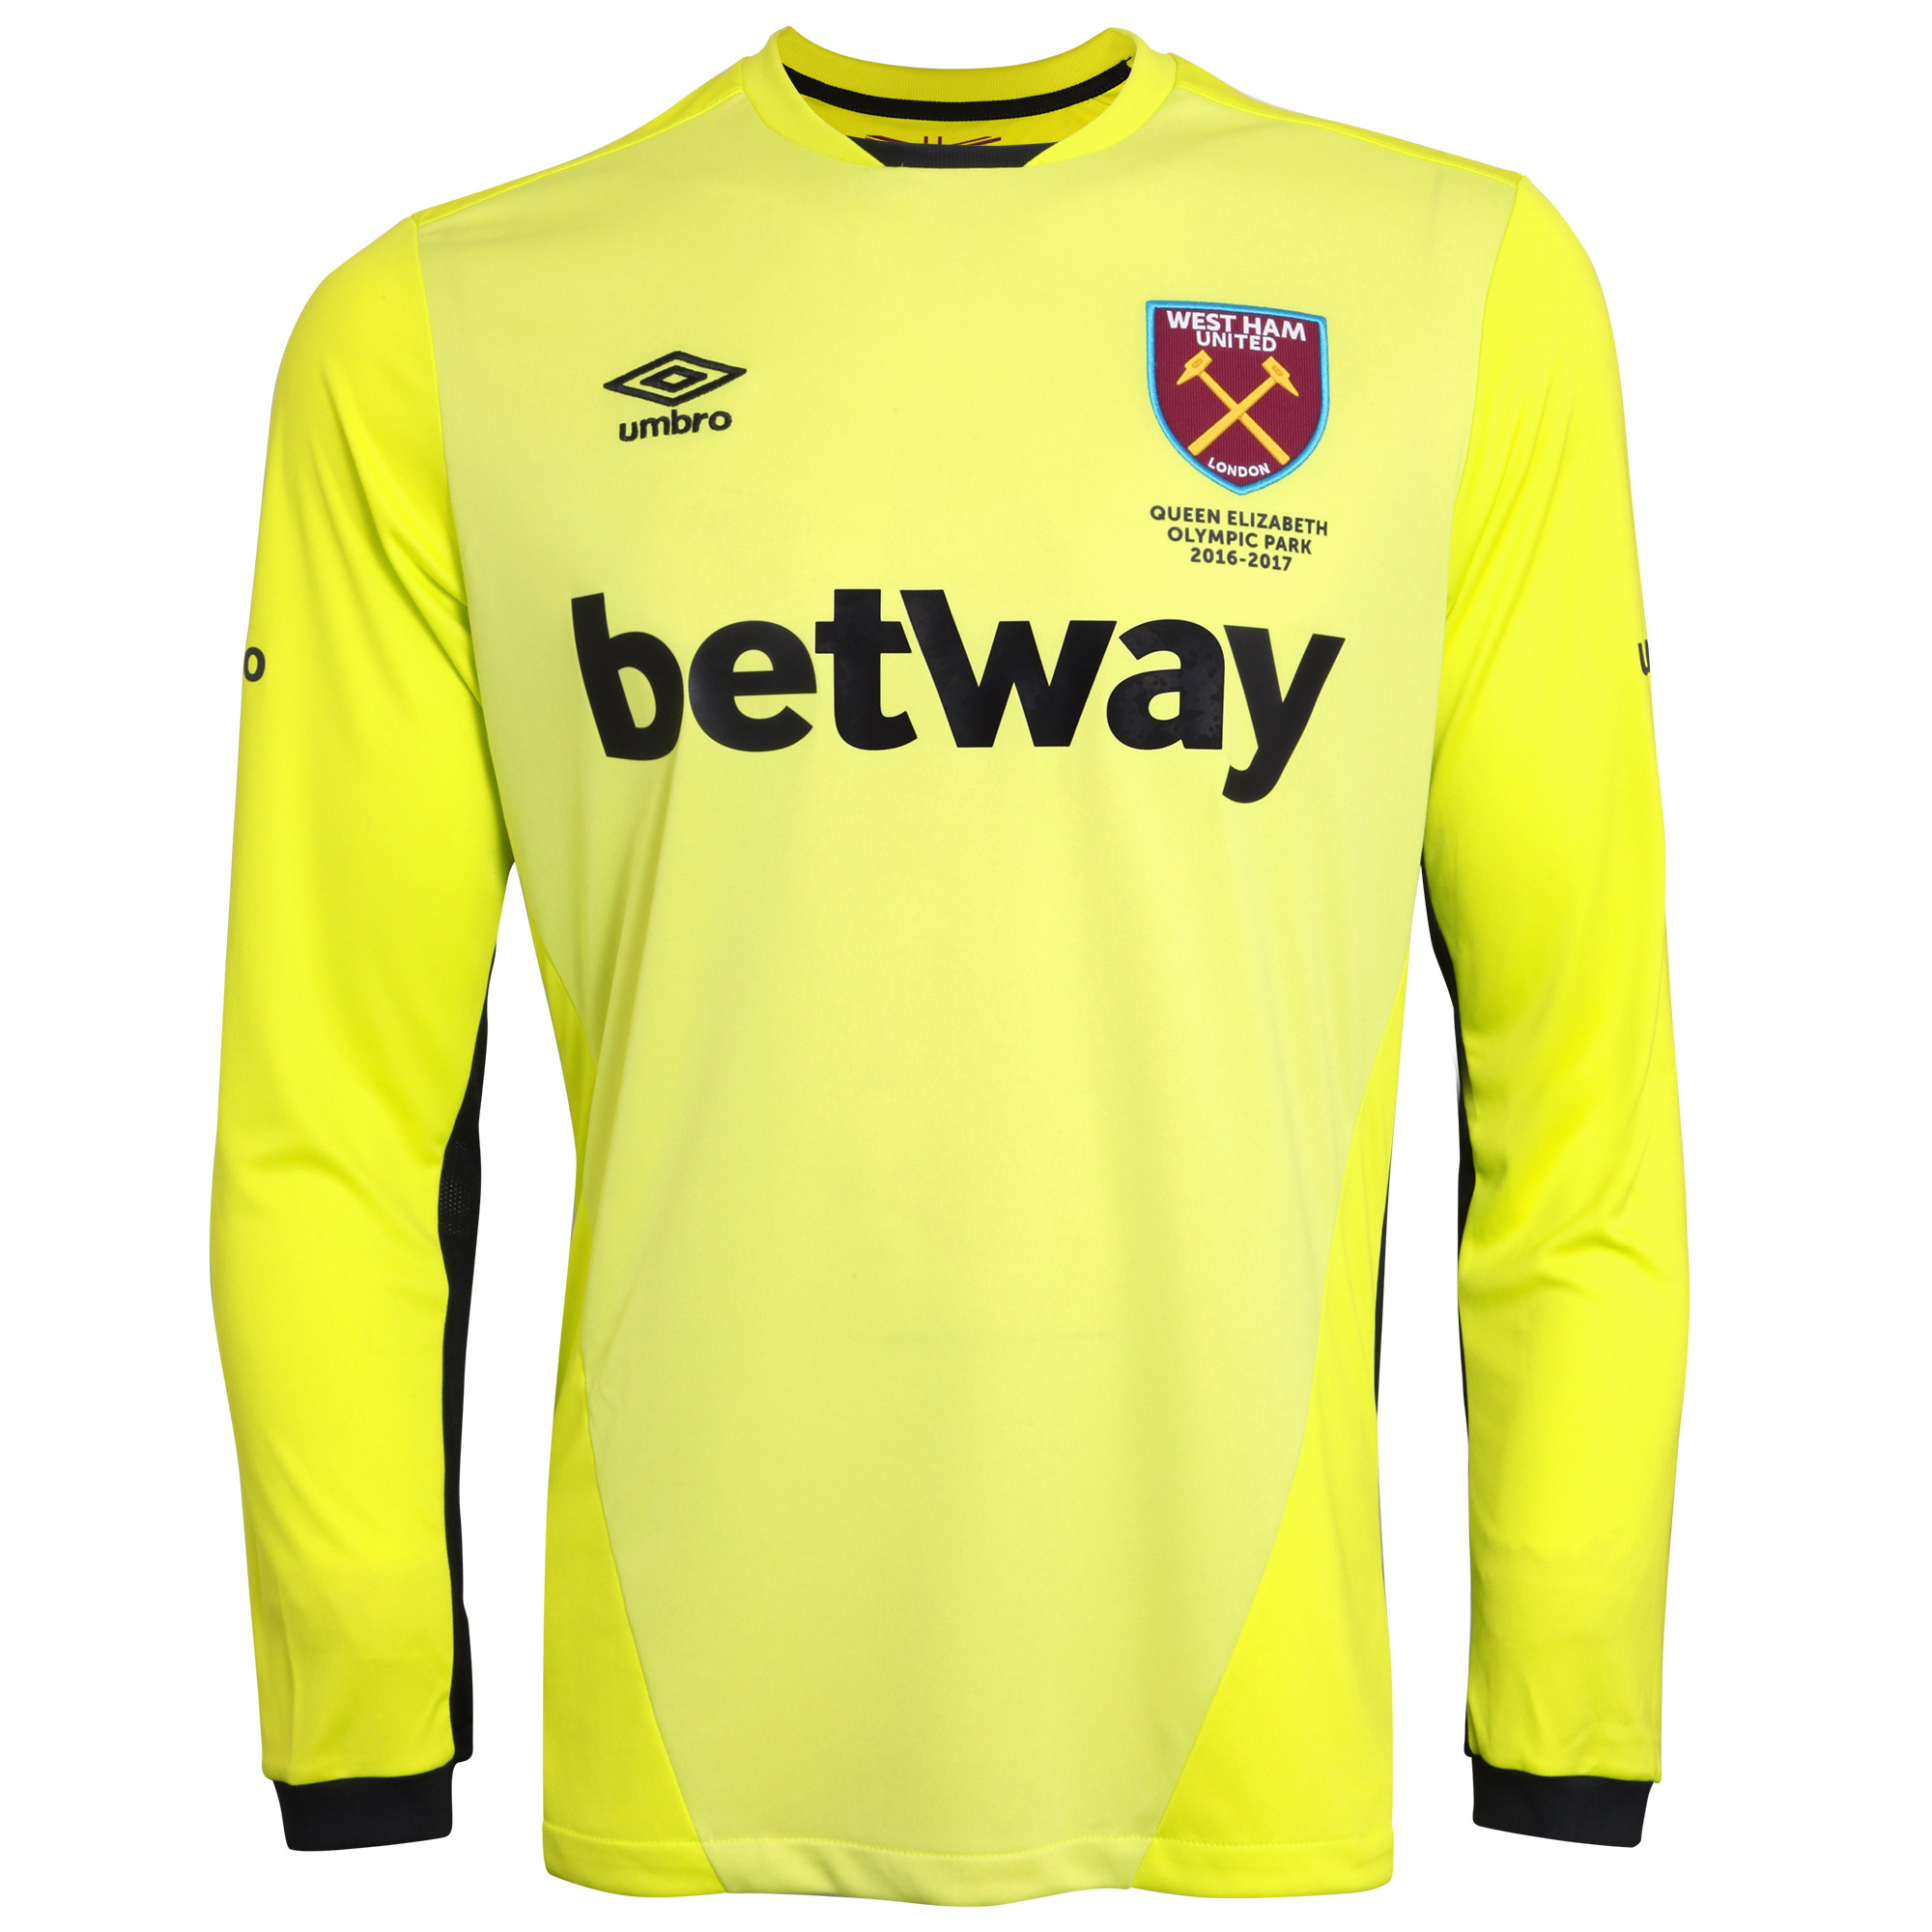 1e502c745 ... reduced west ham united soccer jersey payet 27 new i have mens adult  sizes small 201617